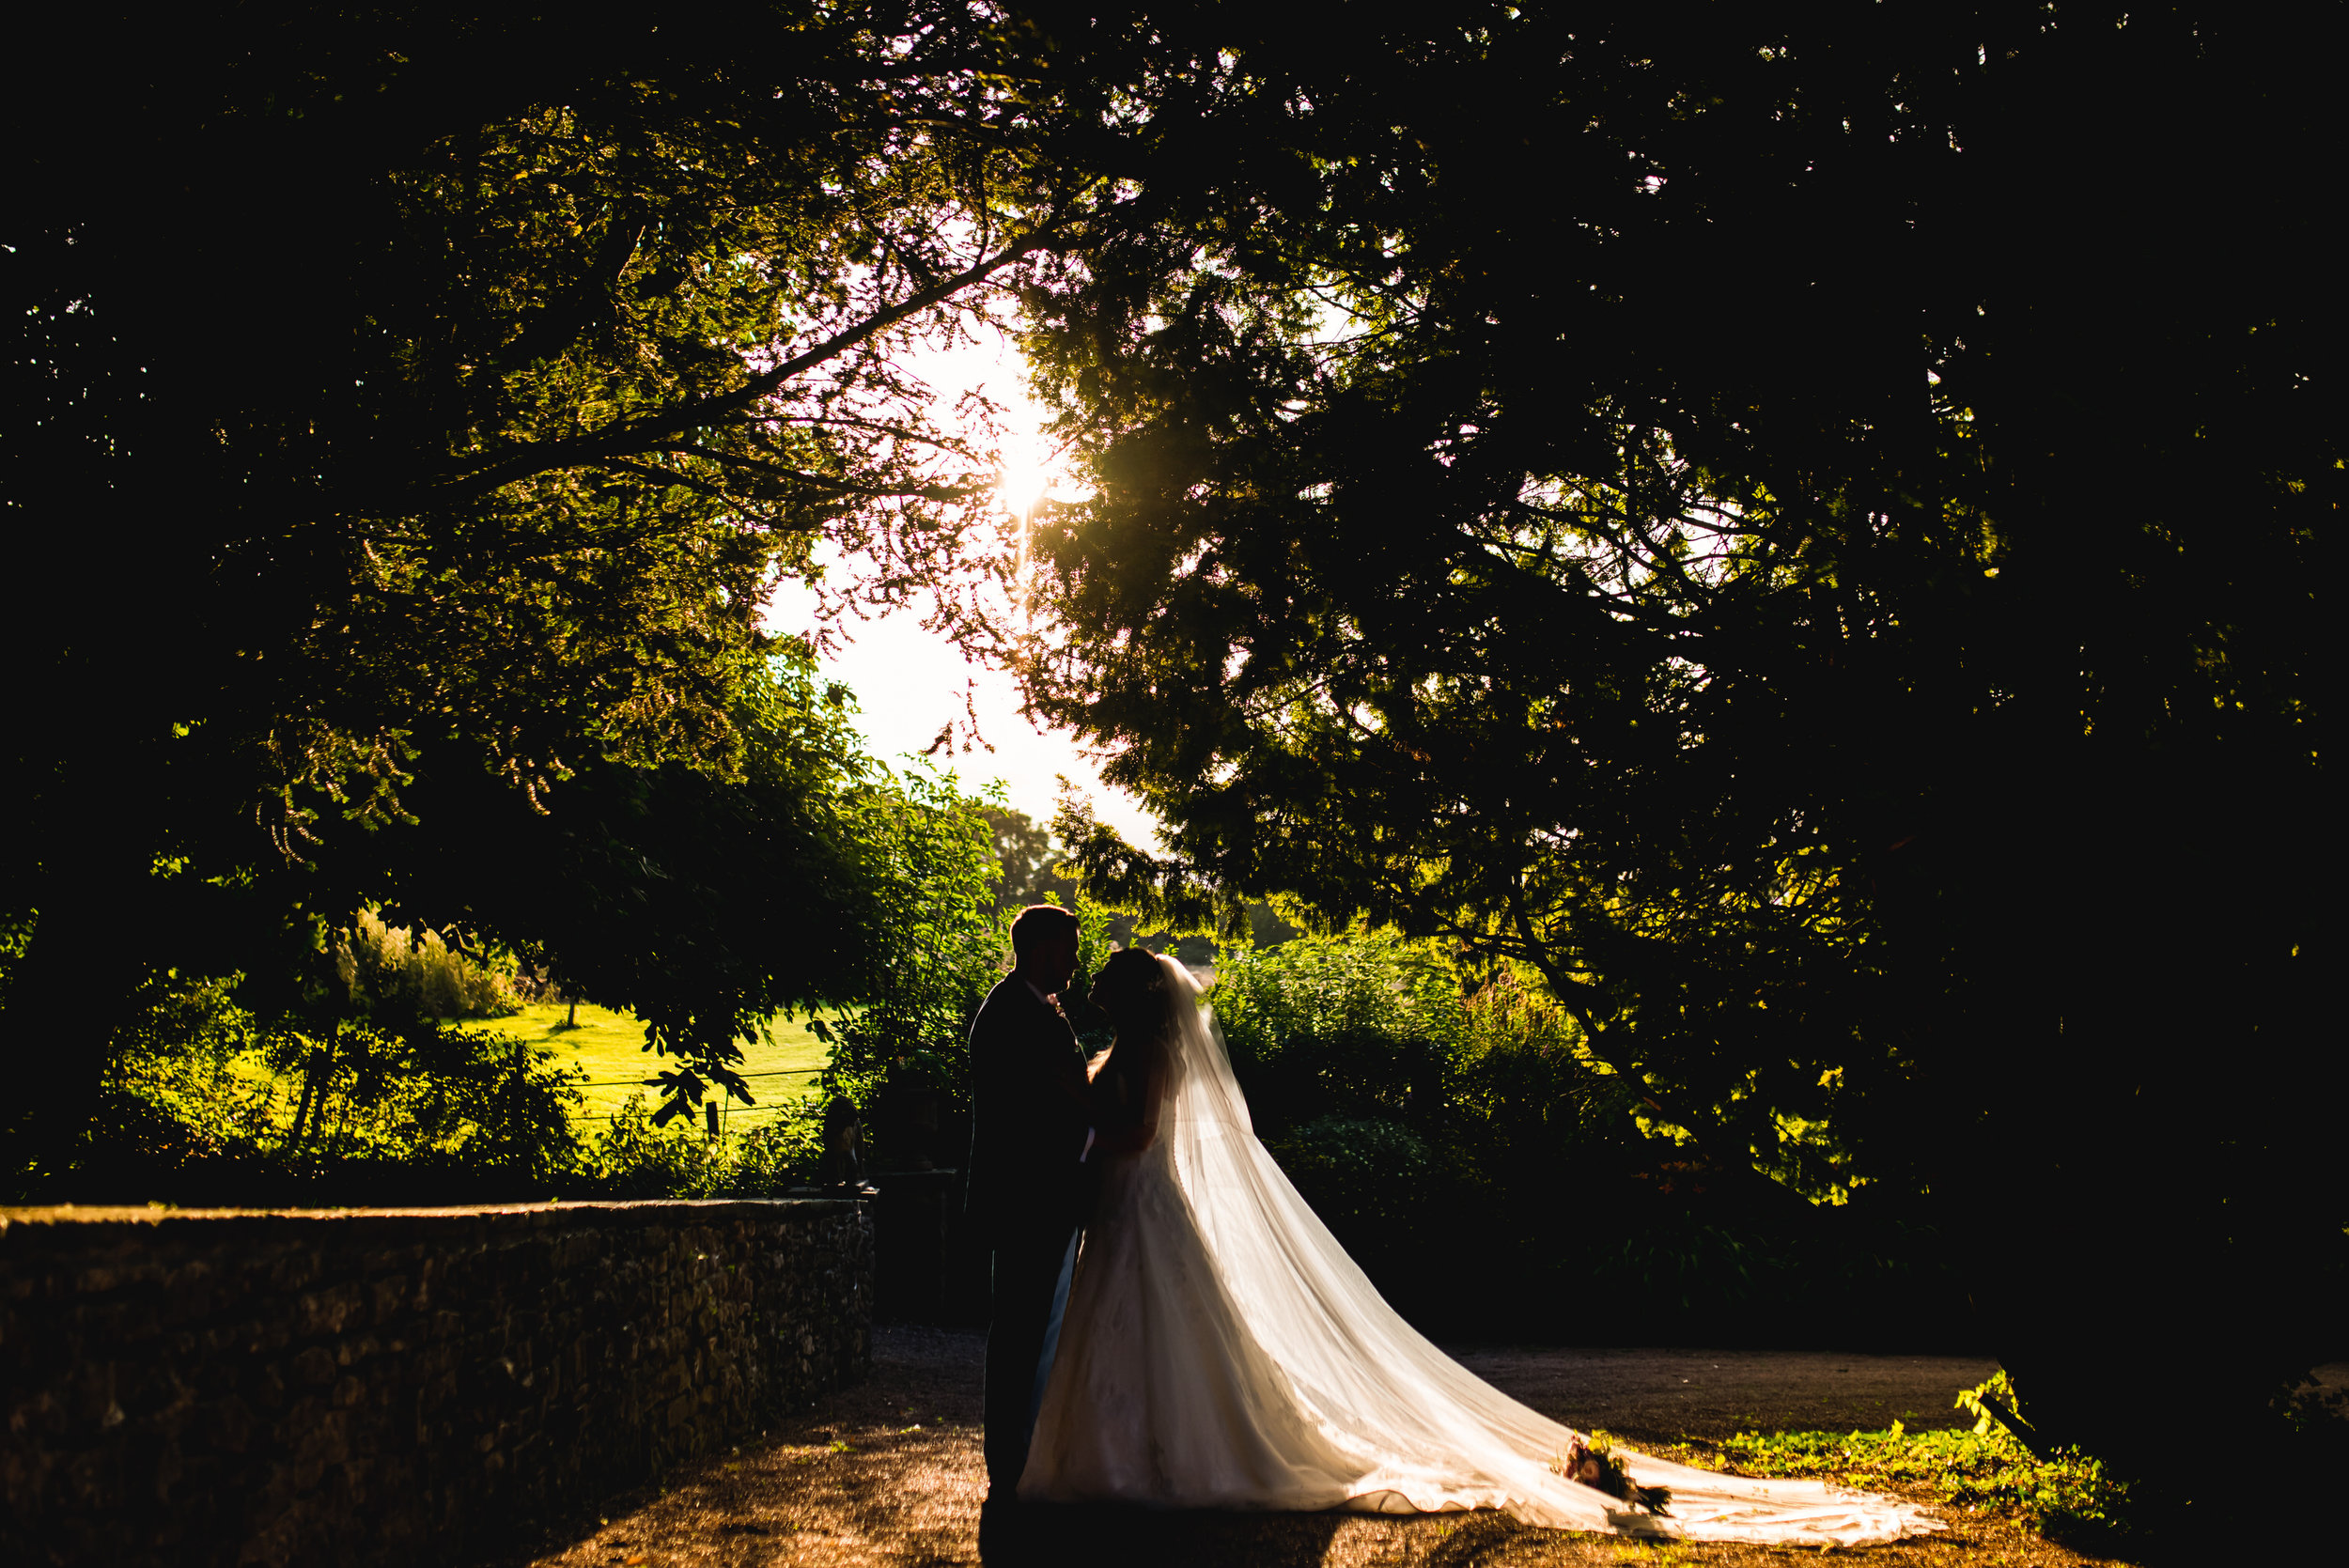 Clearwell-Castle-Gloucestershire-Wedding-Photography-41.jpg